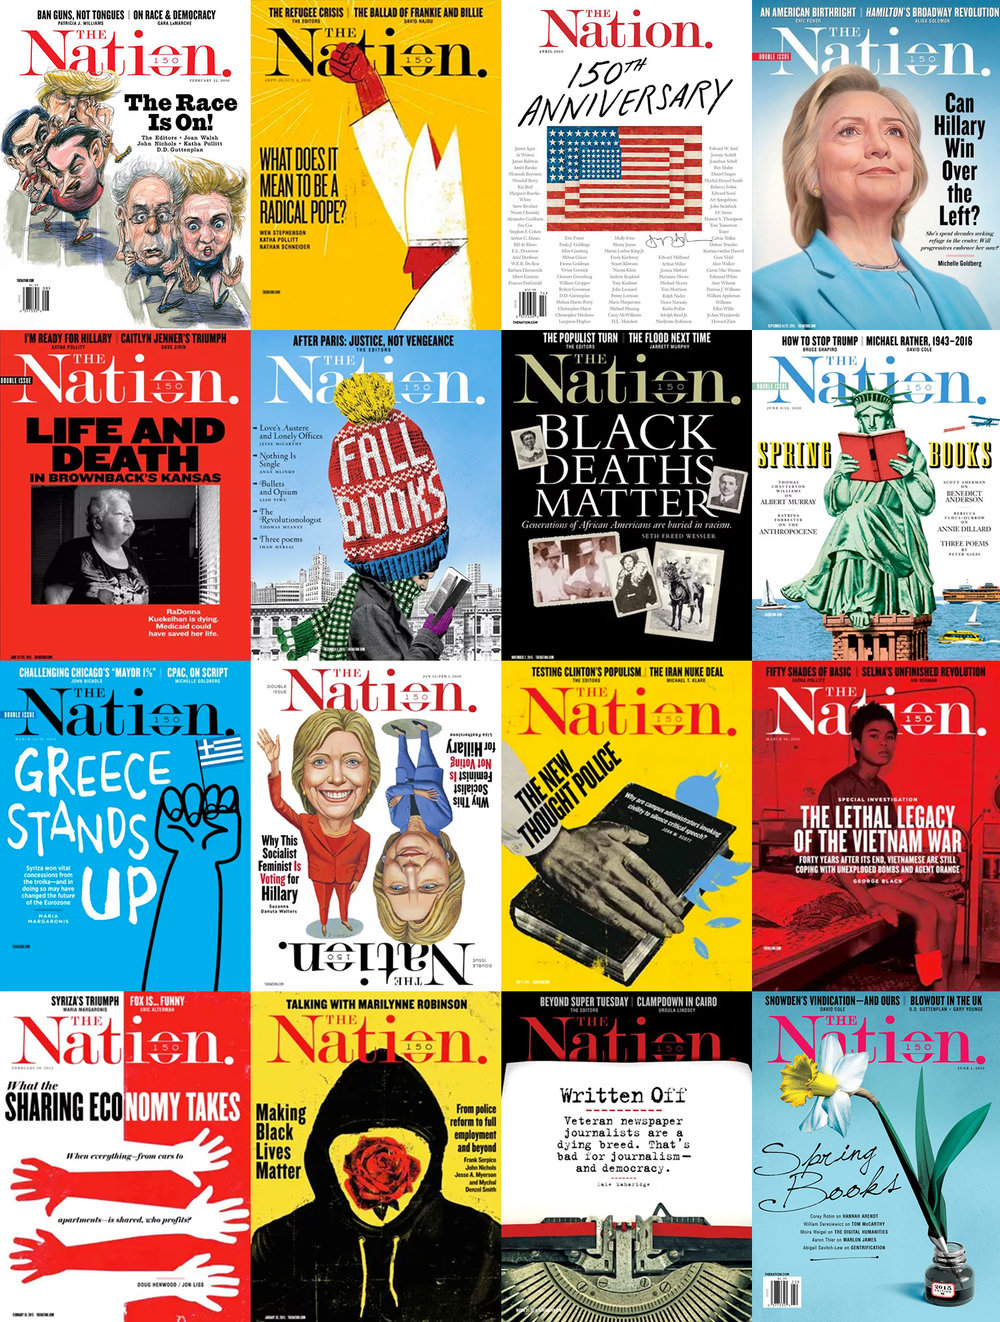 TheNation-Covers-1500x750-061117.jpg